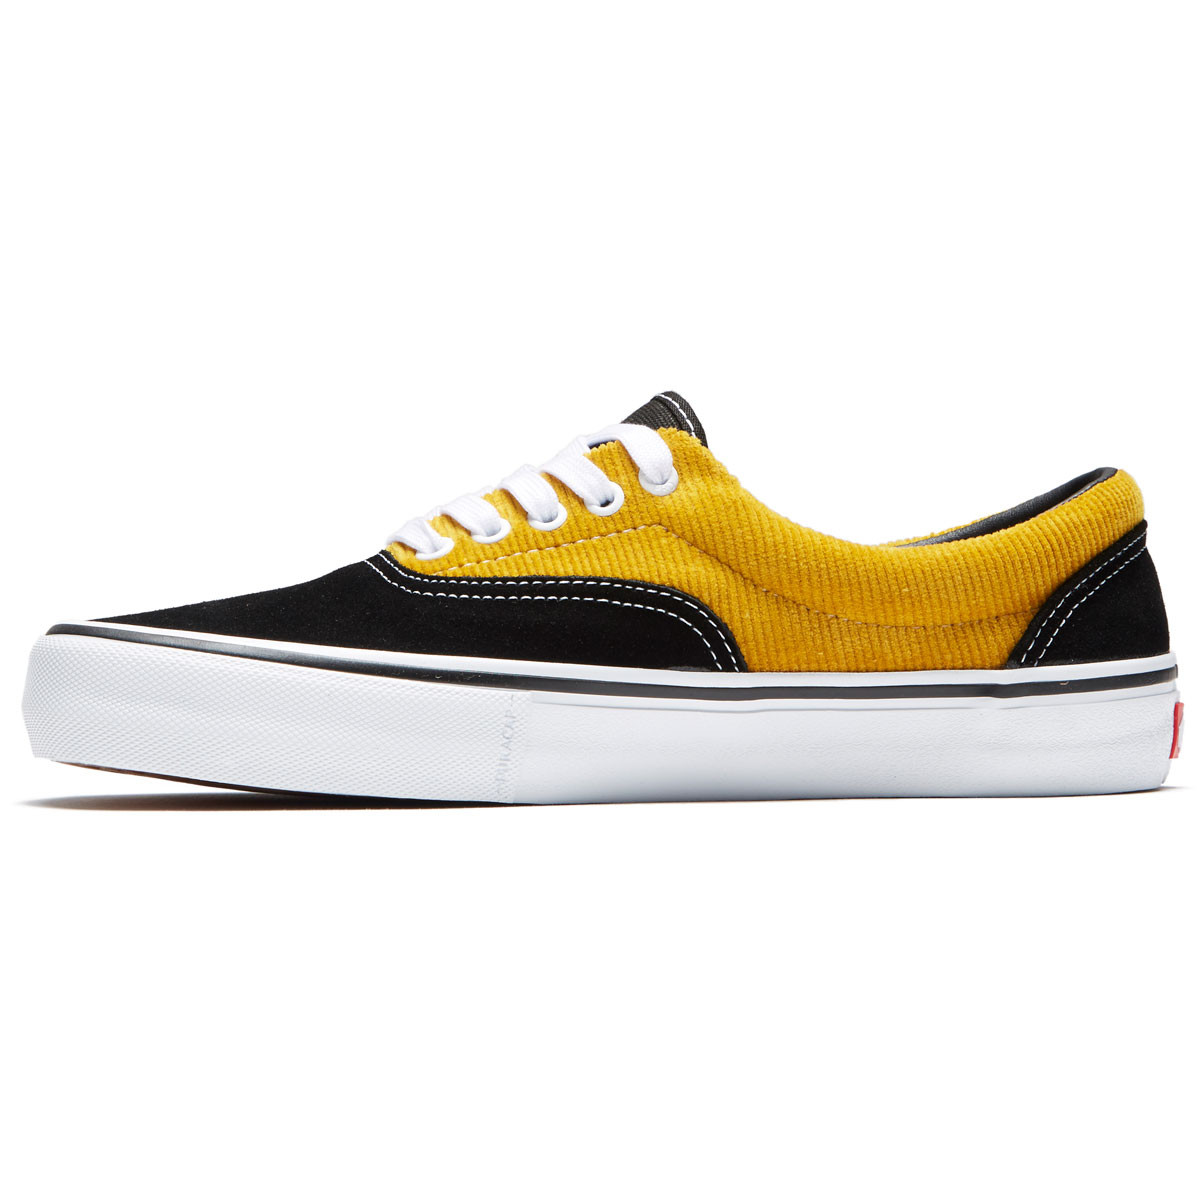 463036ed681d Vans Era Pro Shoes - Black Yolk Yellow - 8.0